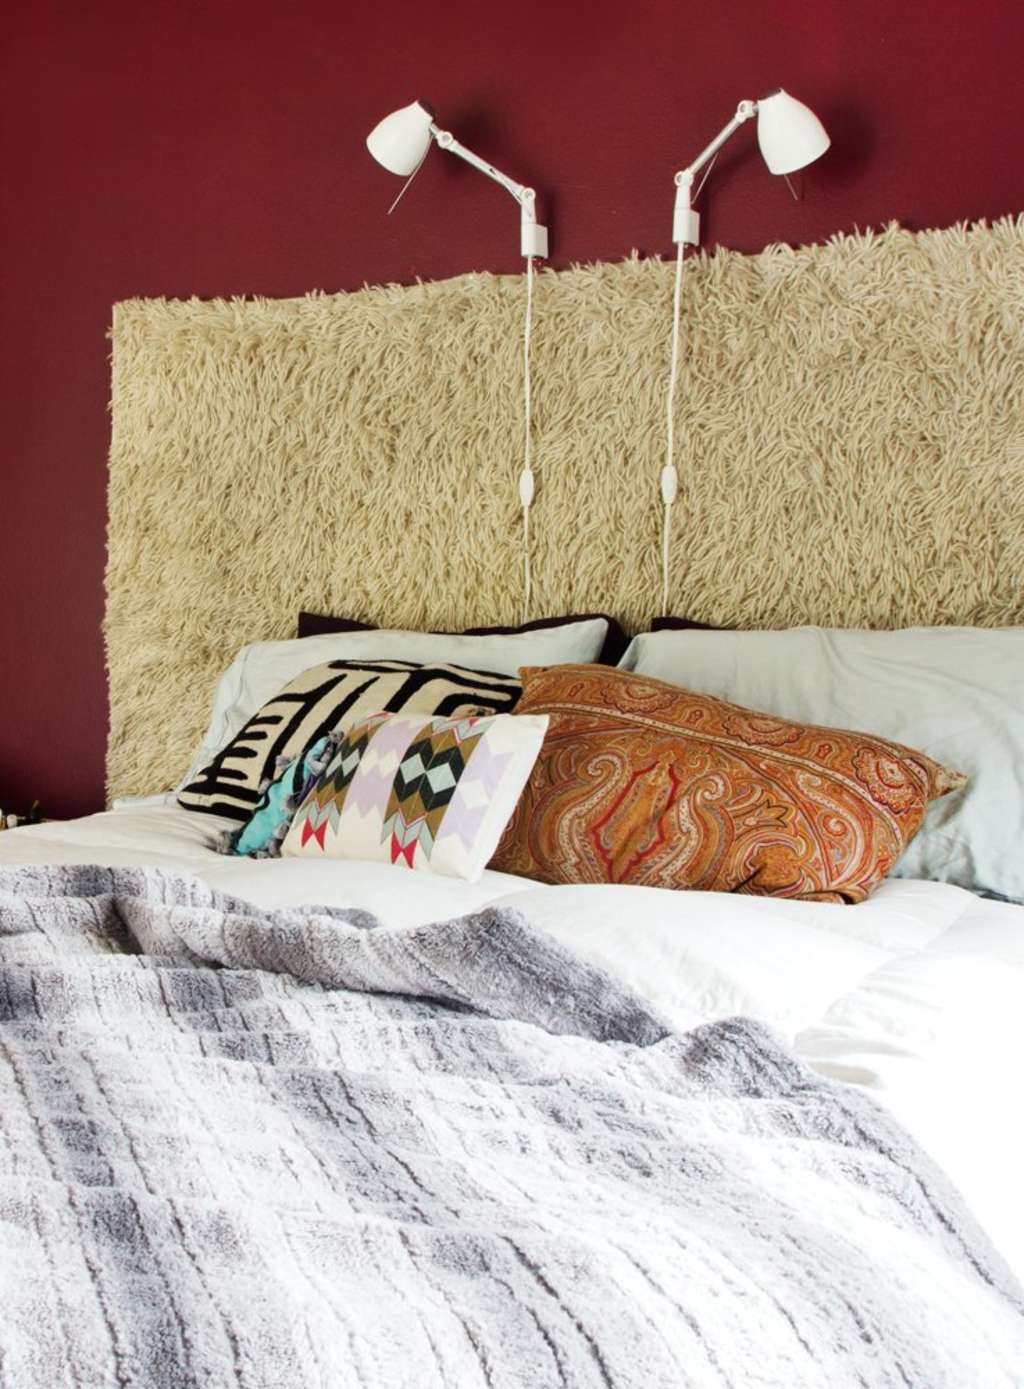 A New Headboard by Bedtime: 12 Unusual & Affordable DIY Headboard Ideas